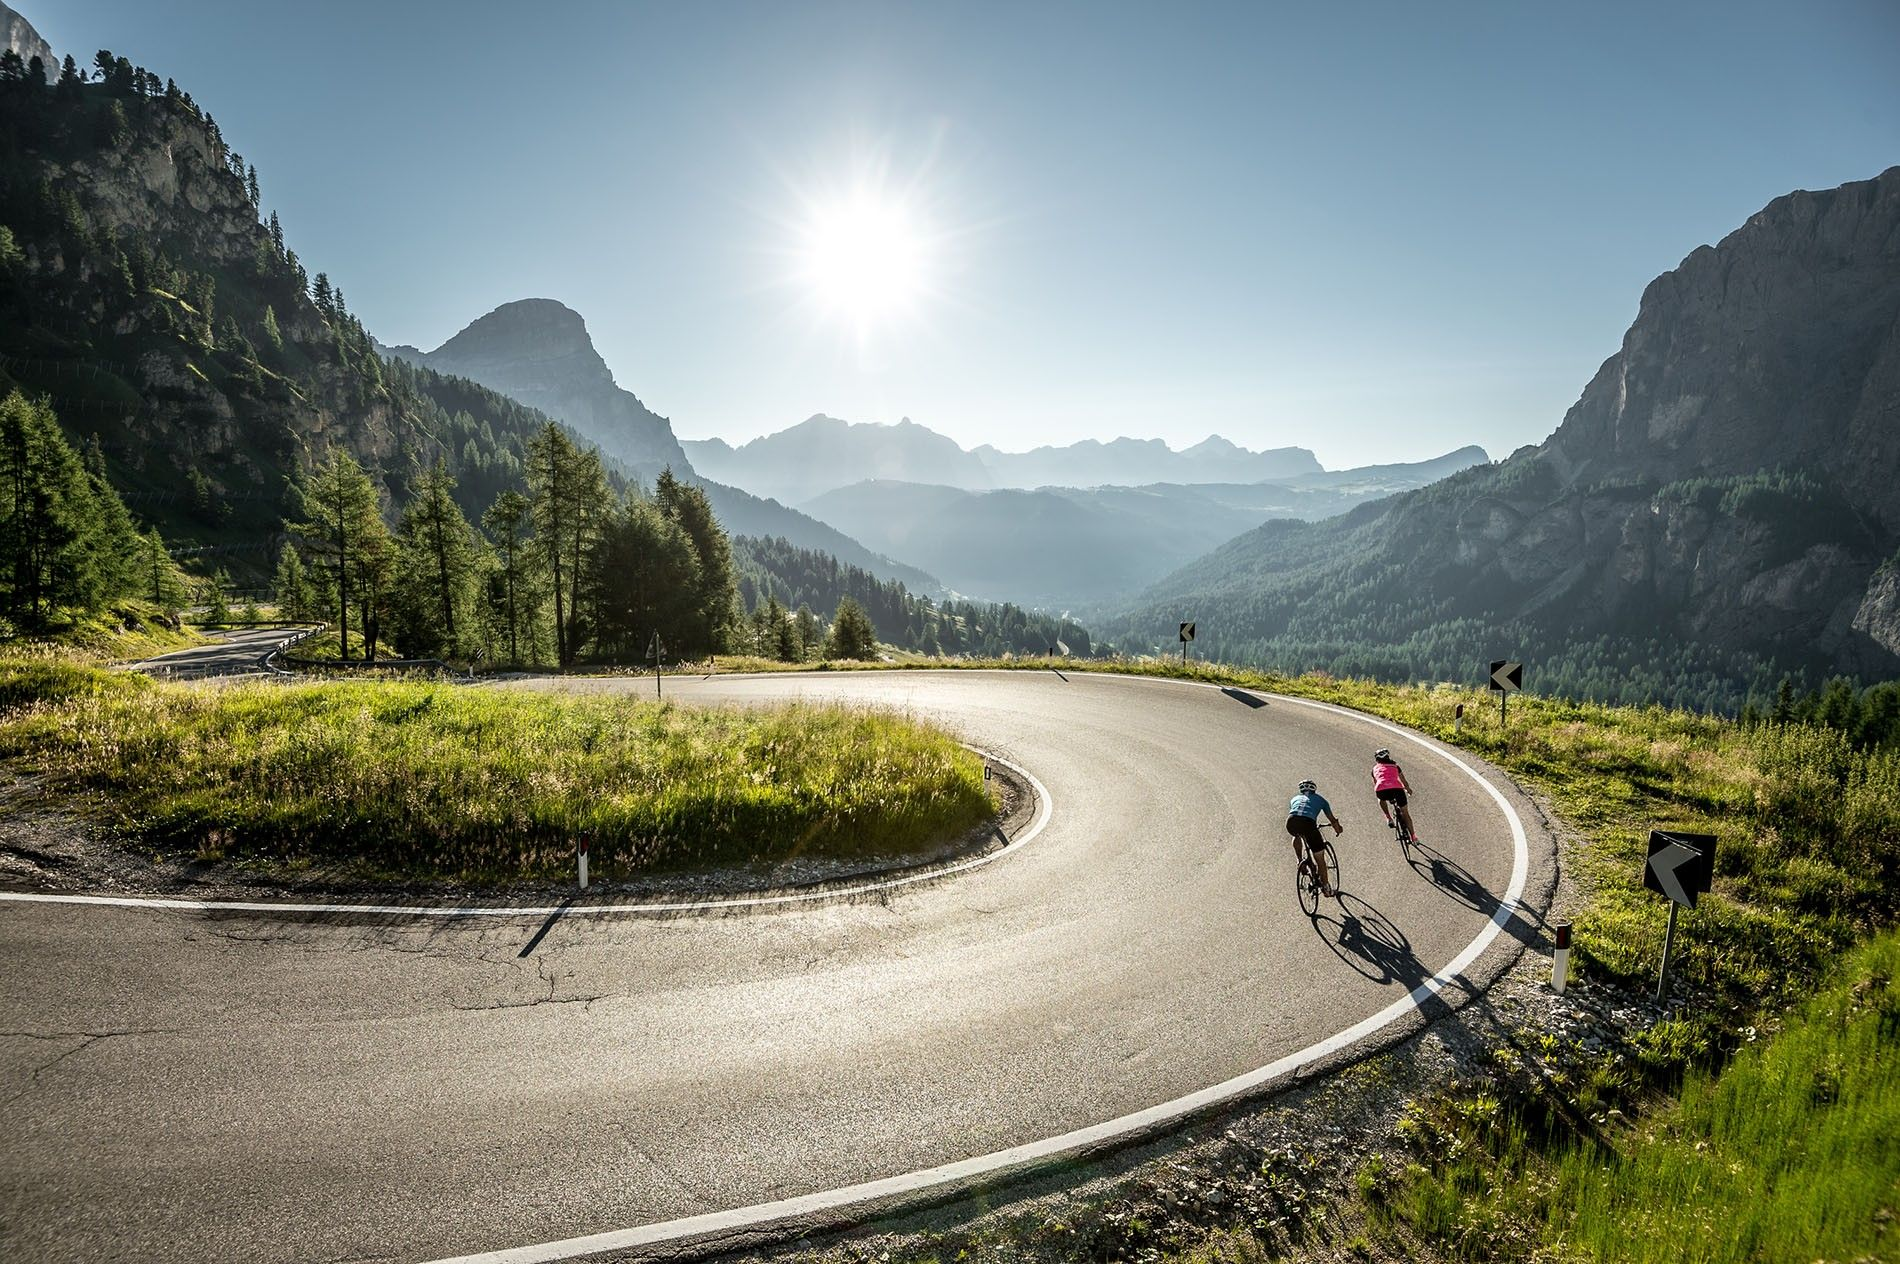 Road cycling on the mountain passes of Alta Badia